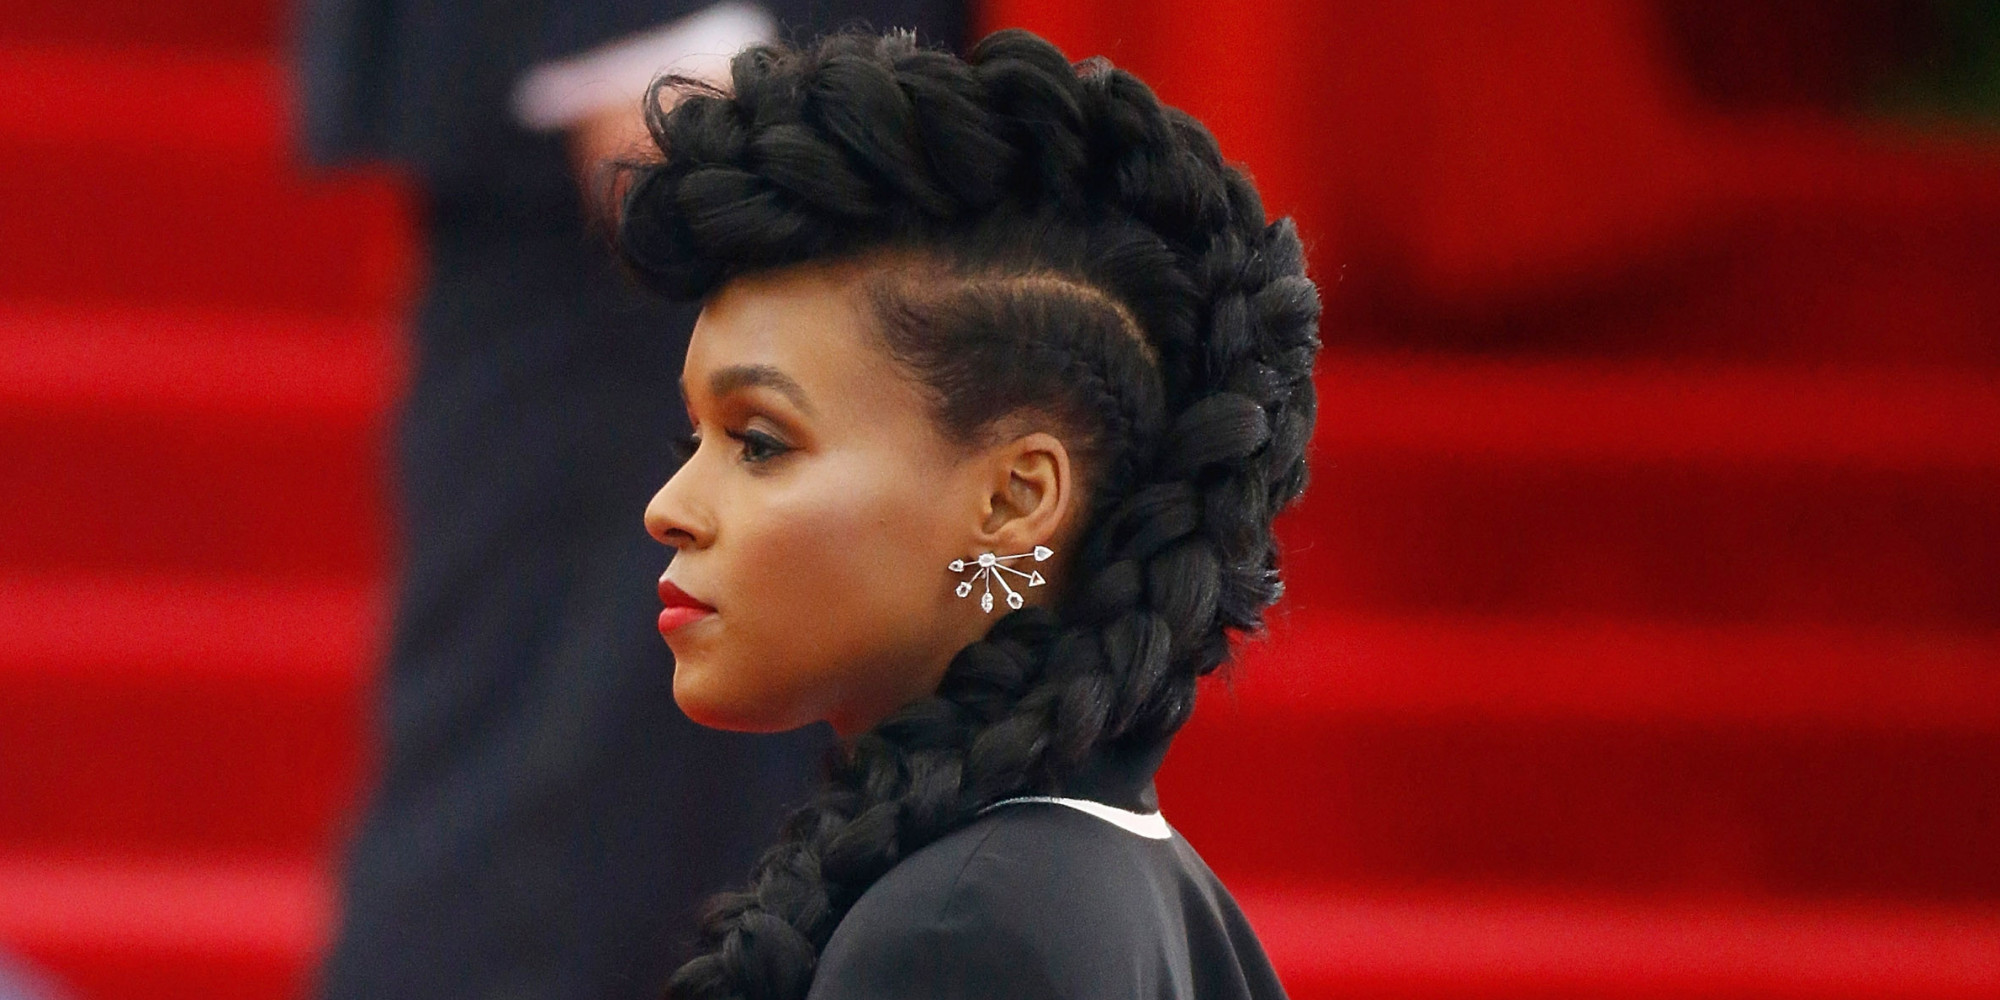 Janelle Monae has long been a source for hair inspiration, and the braided mohawk is no exception. Courtesy photo